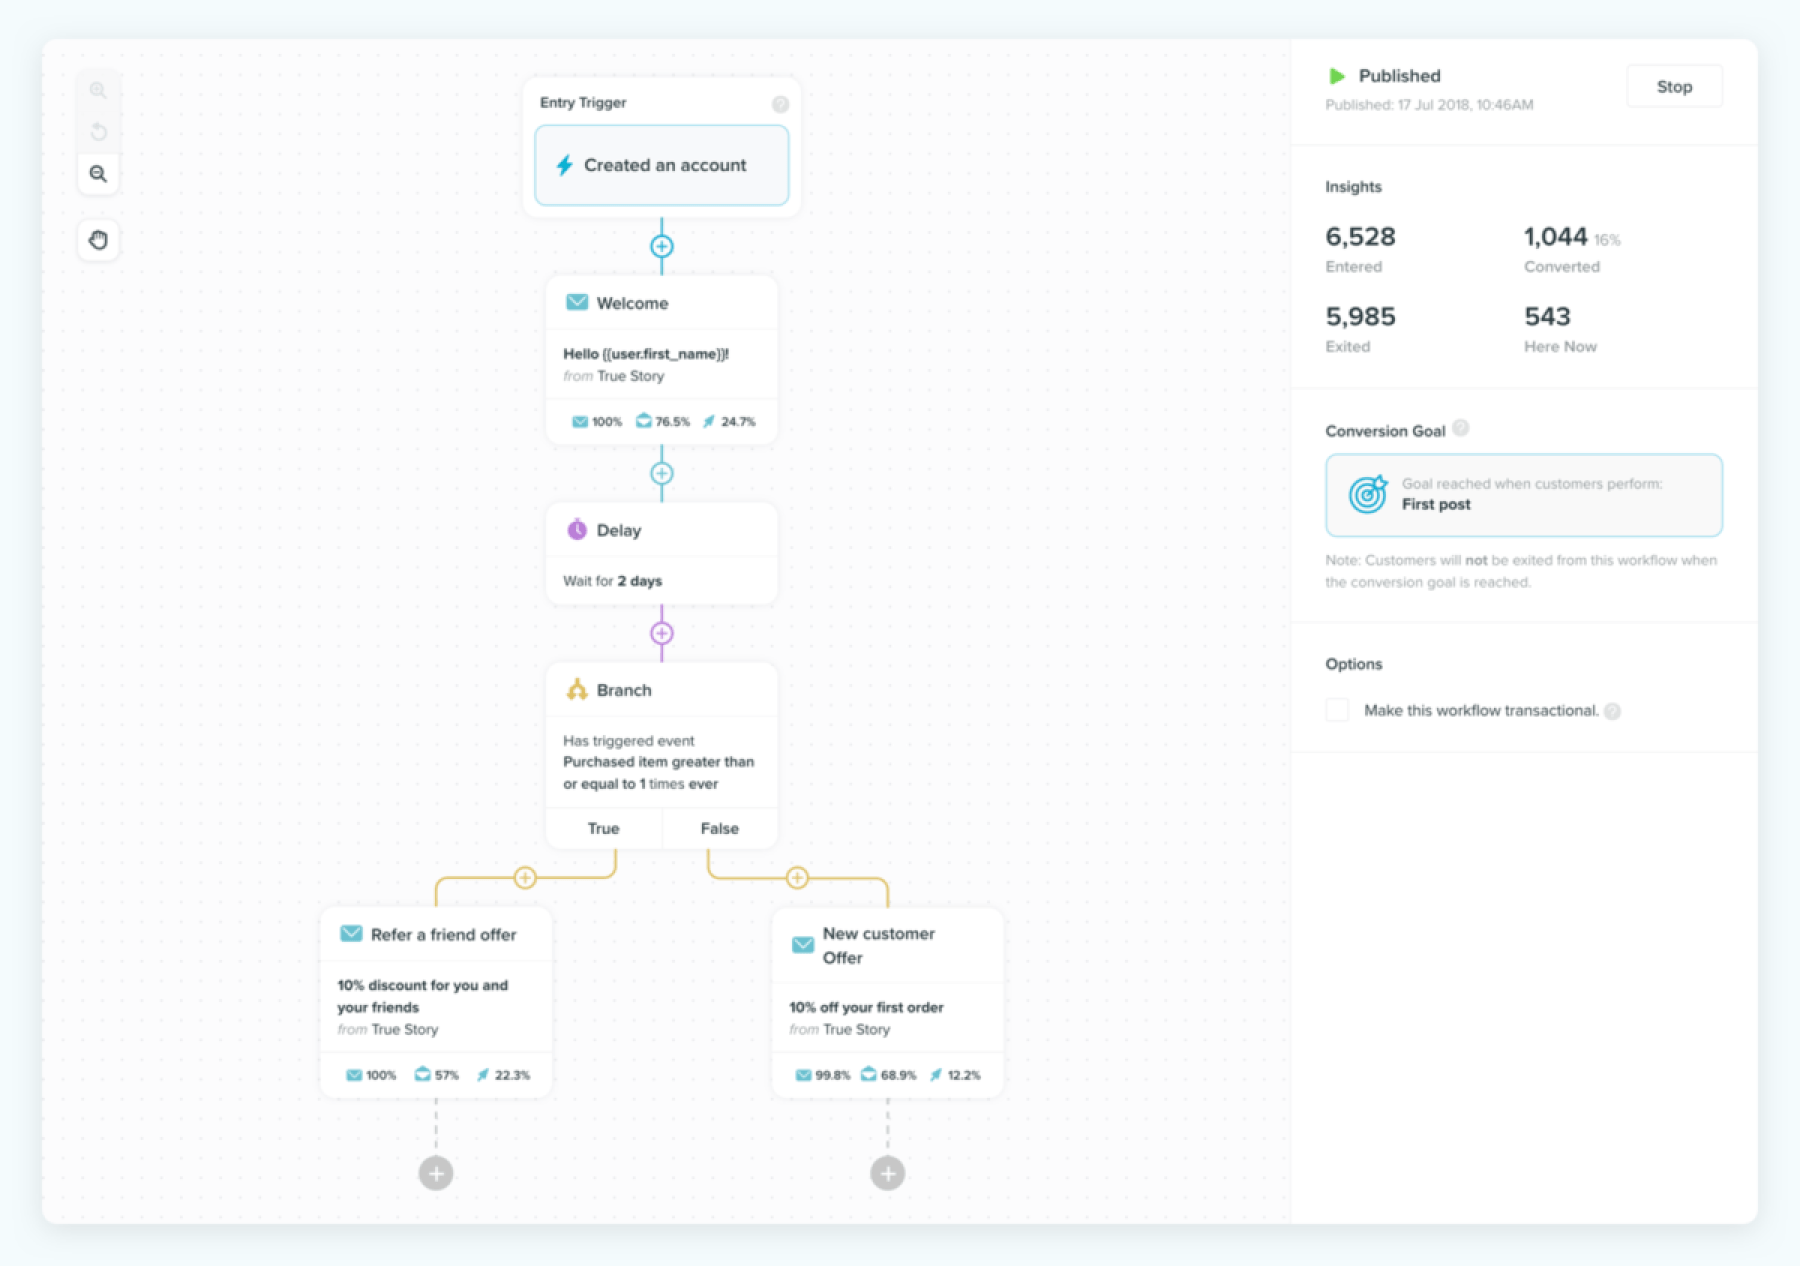 Email workflow canvas